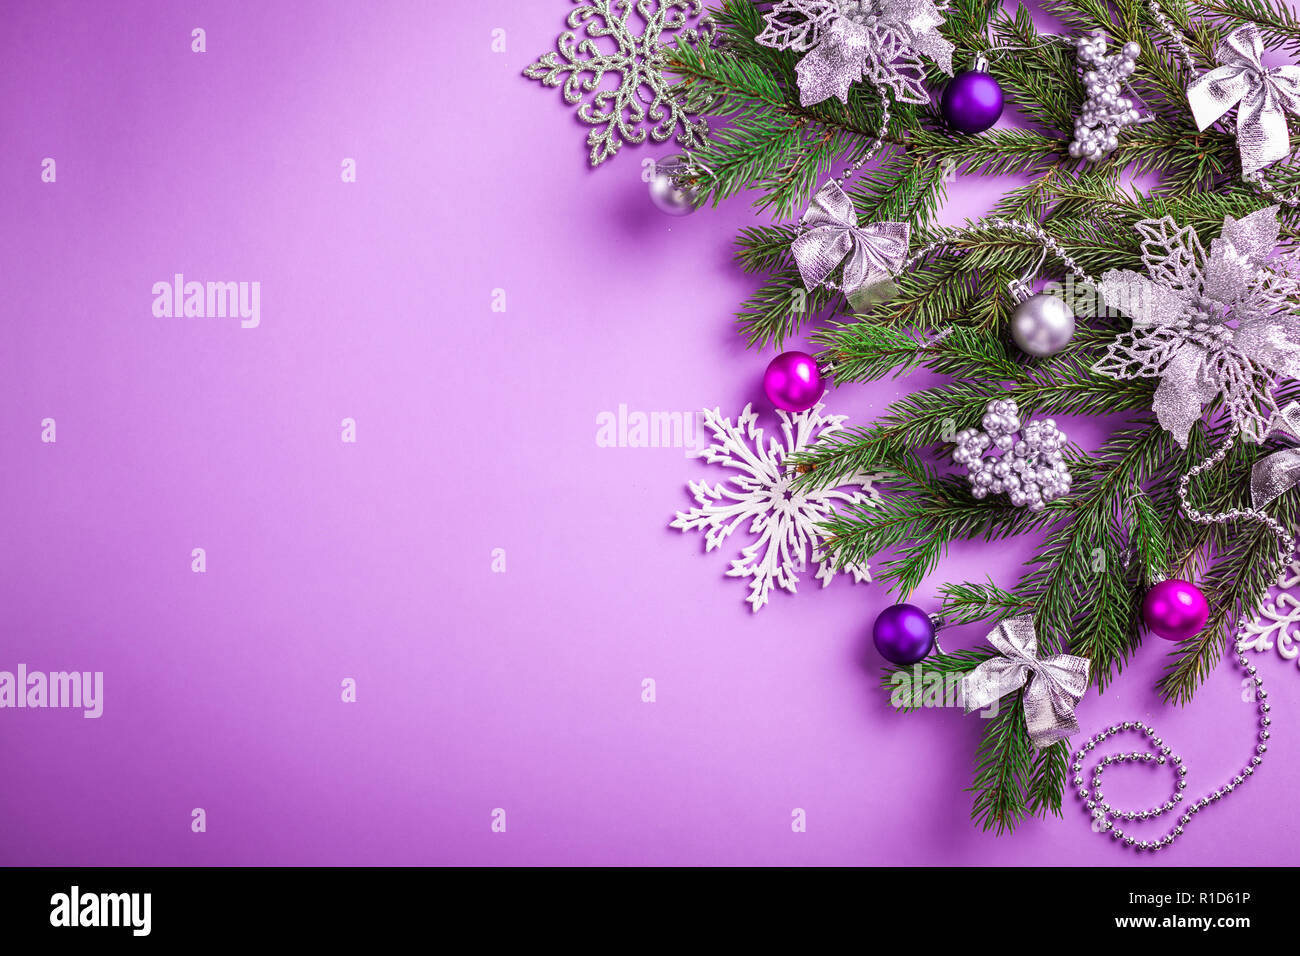 purple christmas and new year background with decorated fir tree and toys copy space